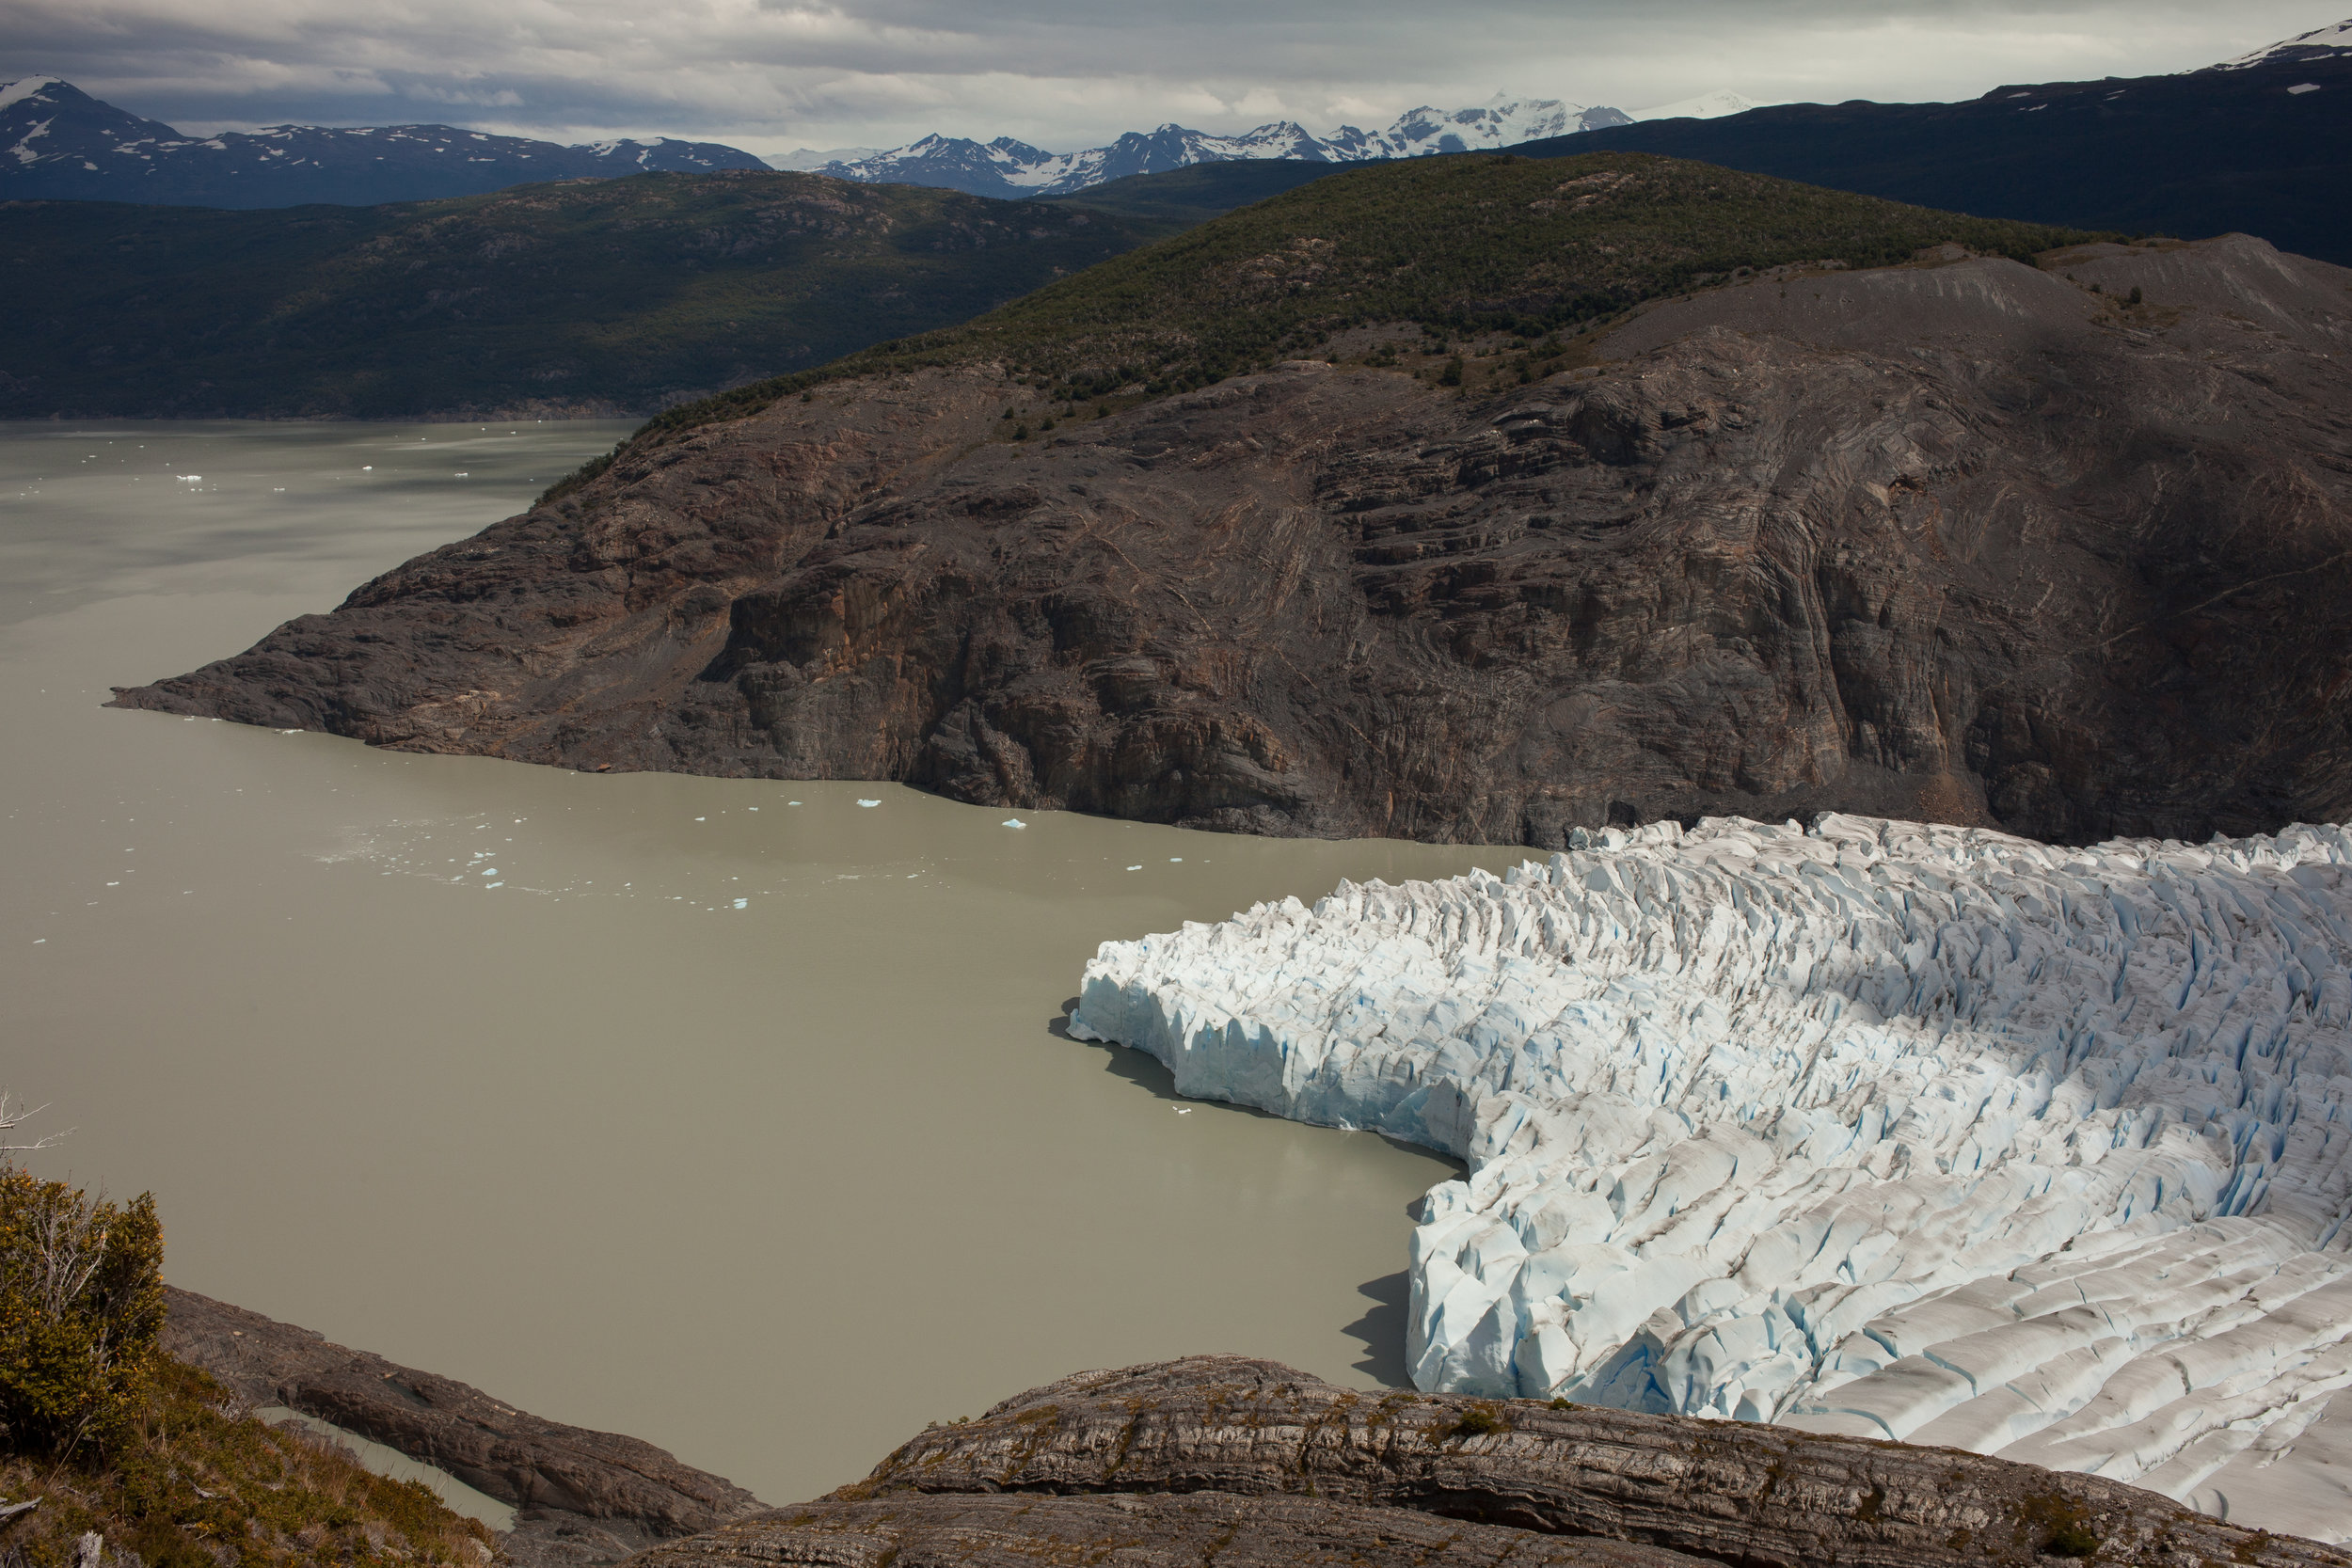 Grey Glacier is 100 feet thick and in some places several kilometers wide.   According to a fellow hiker, Grey Glacier has recited dramatically in the past few years since his last visit.